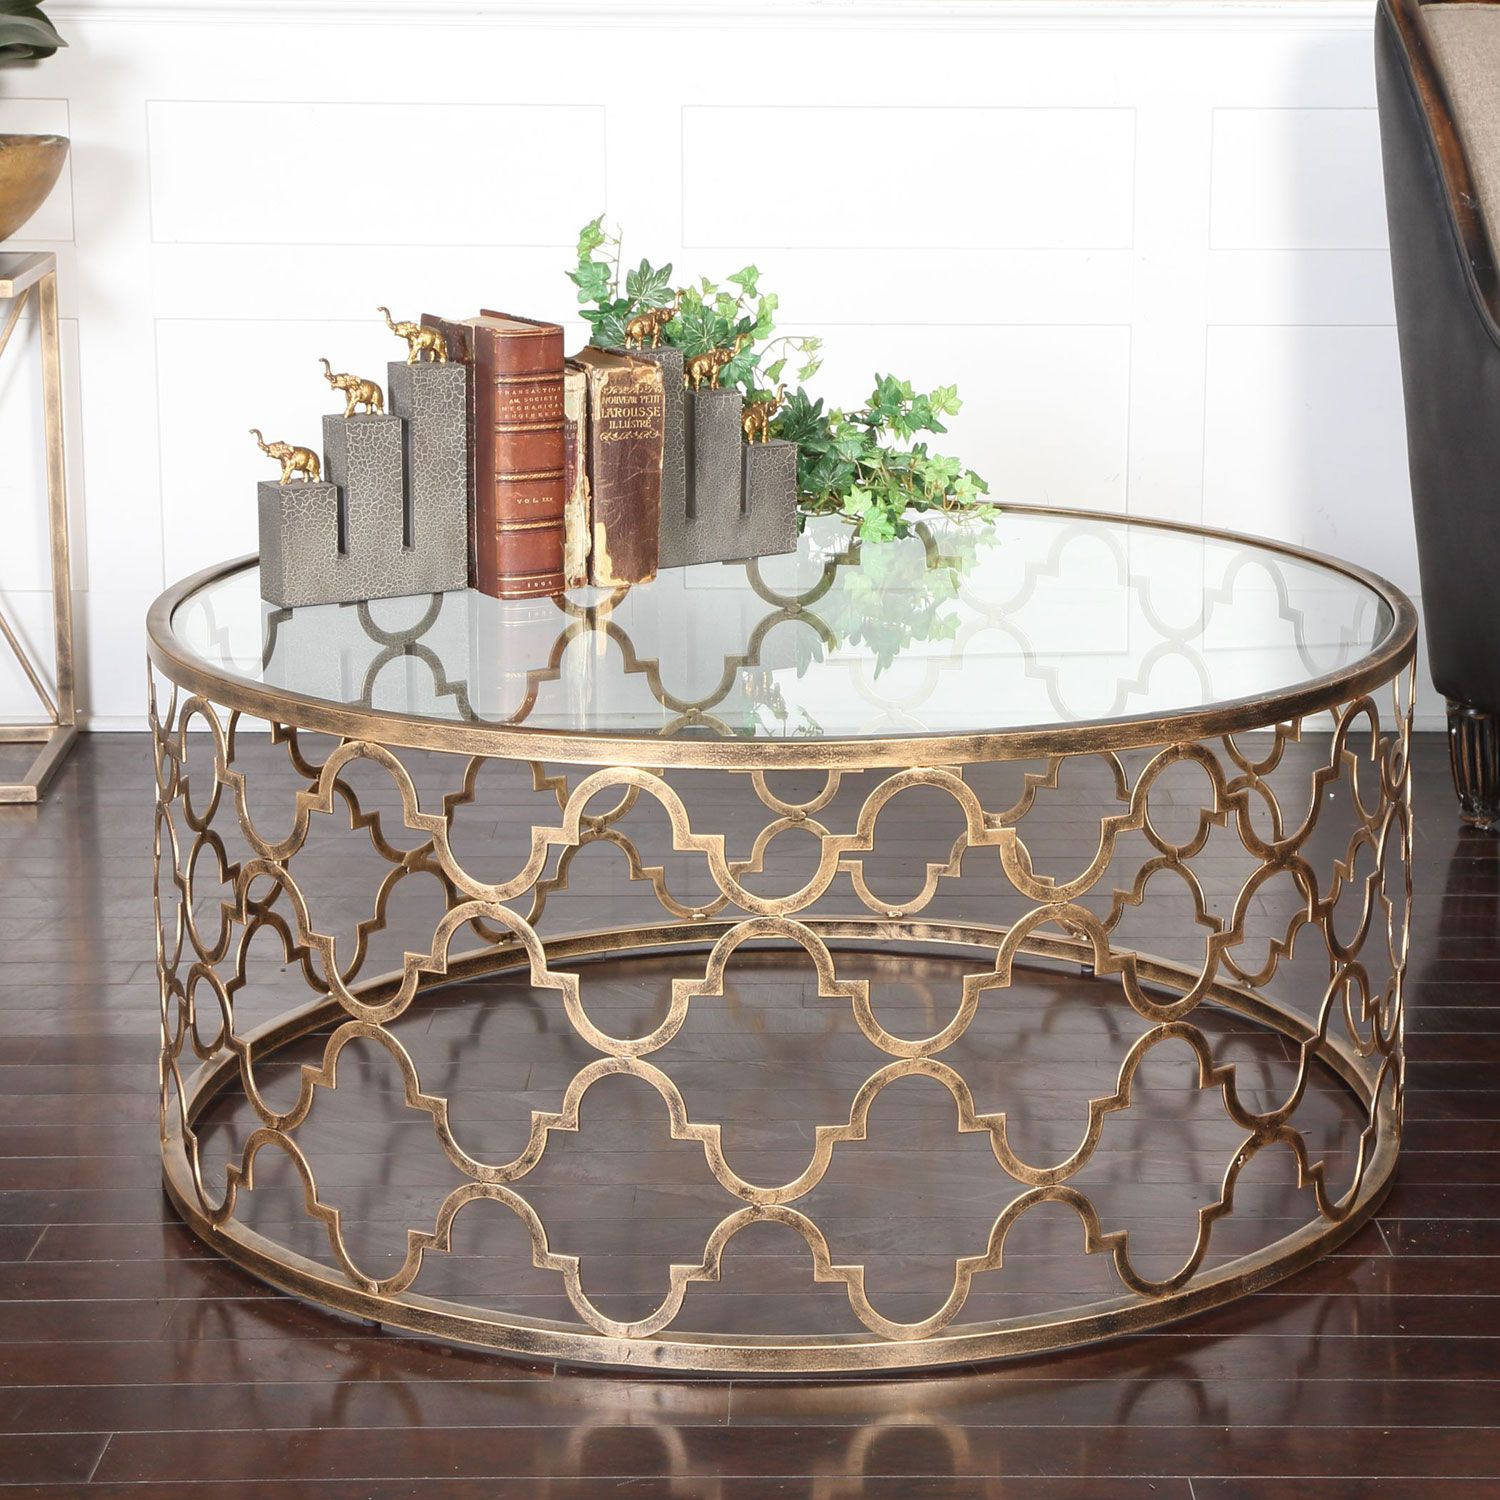 Heavy iron in antique gold finish with clear tempered glass uttermost accent furniture combines premium quality materials with unique high style design